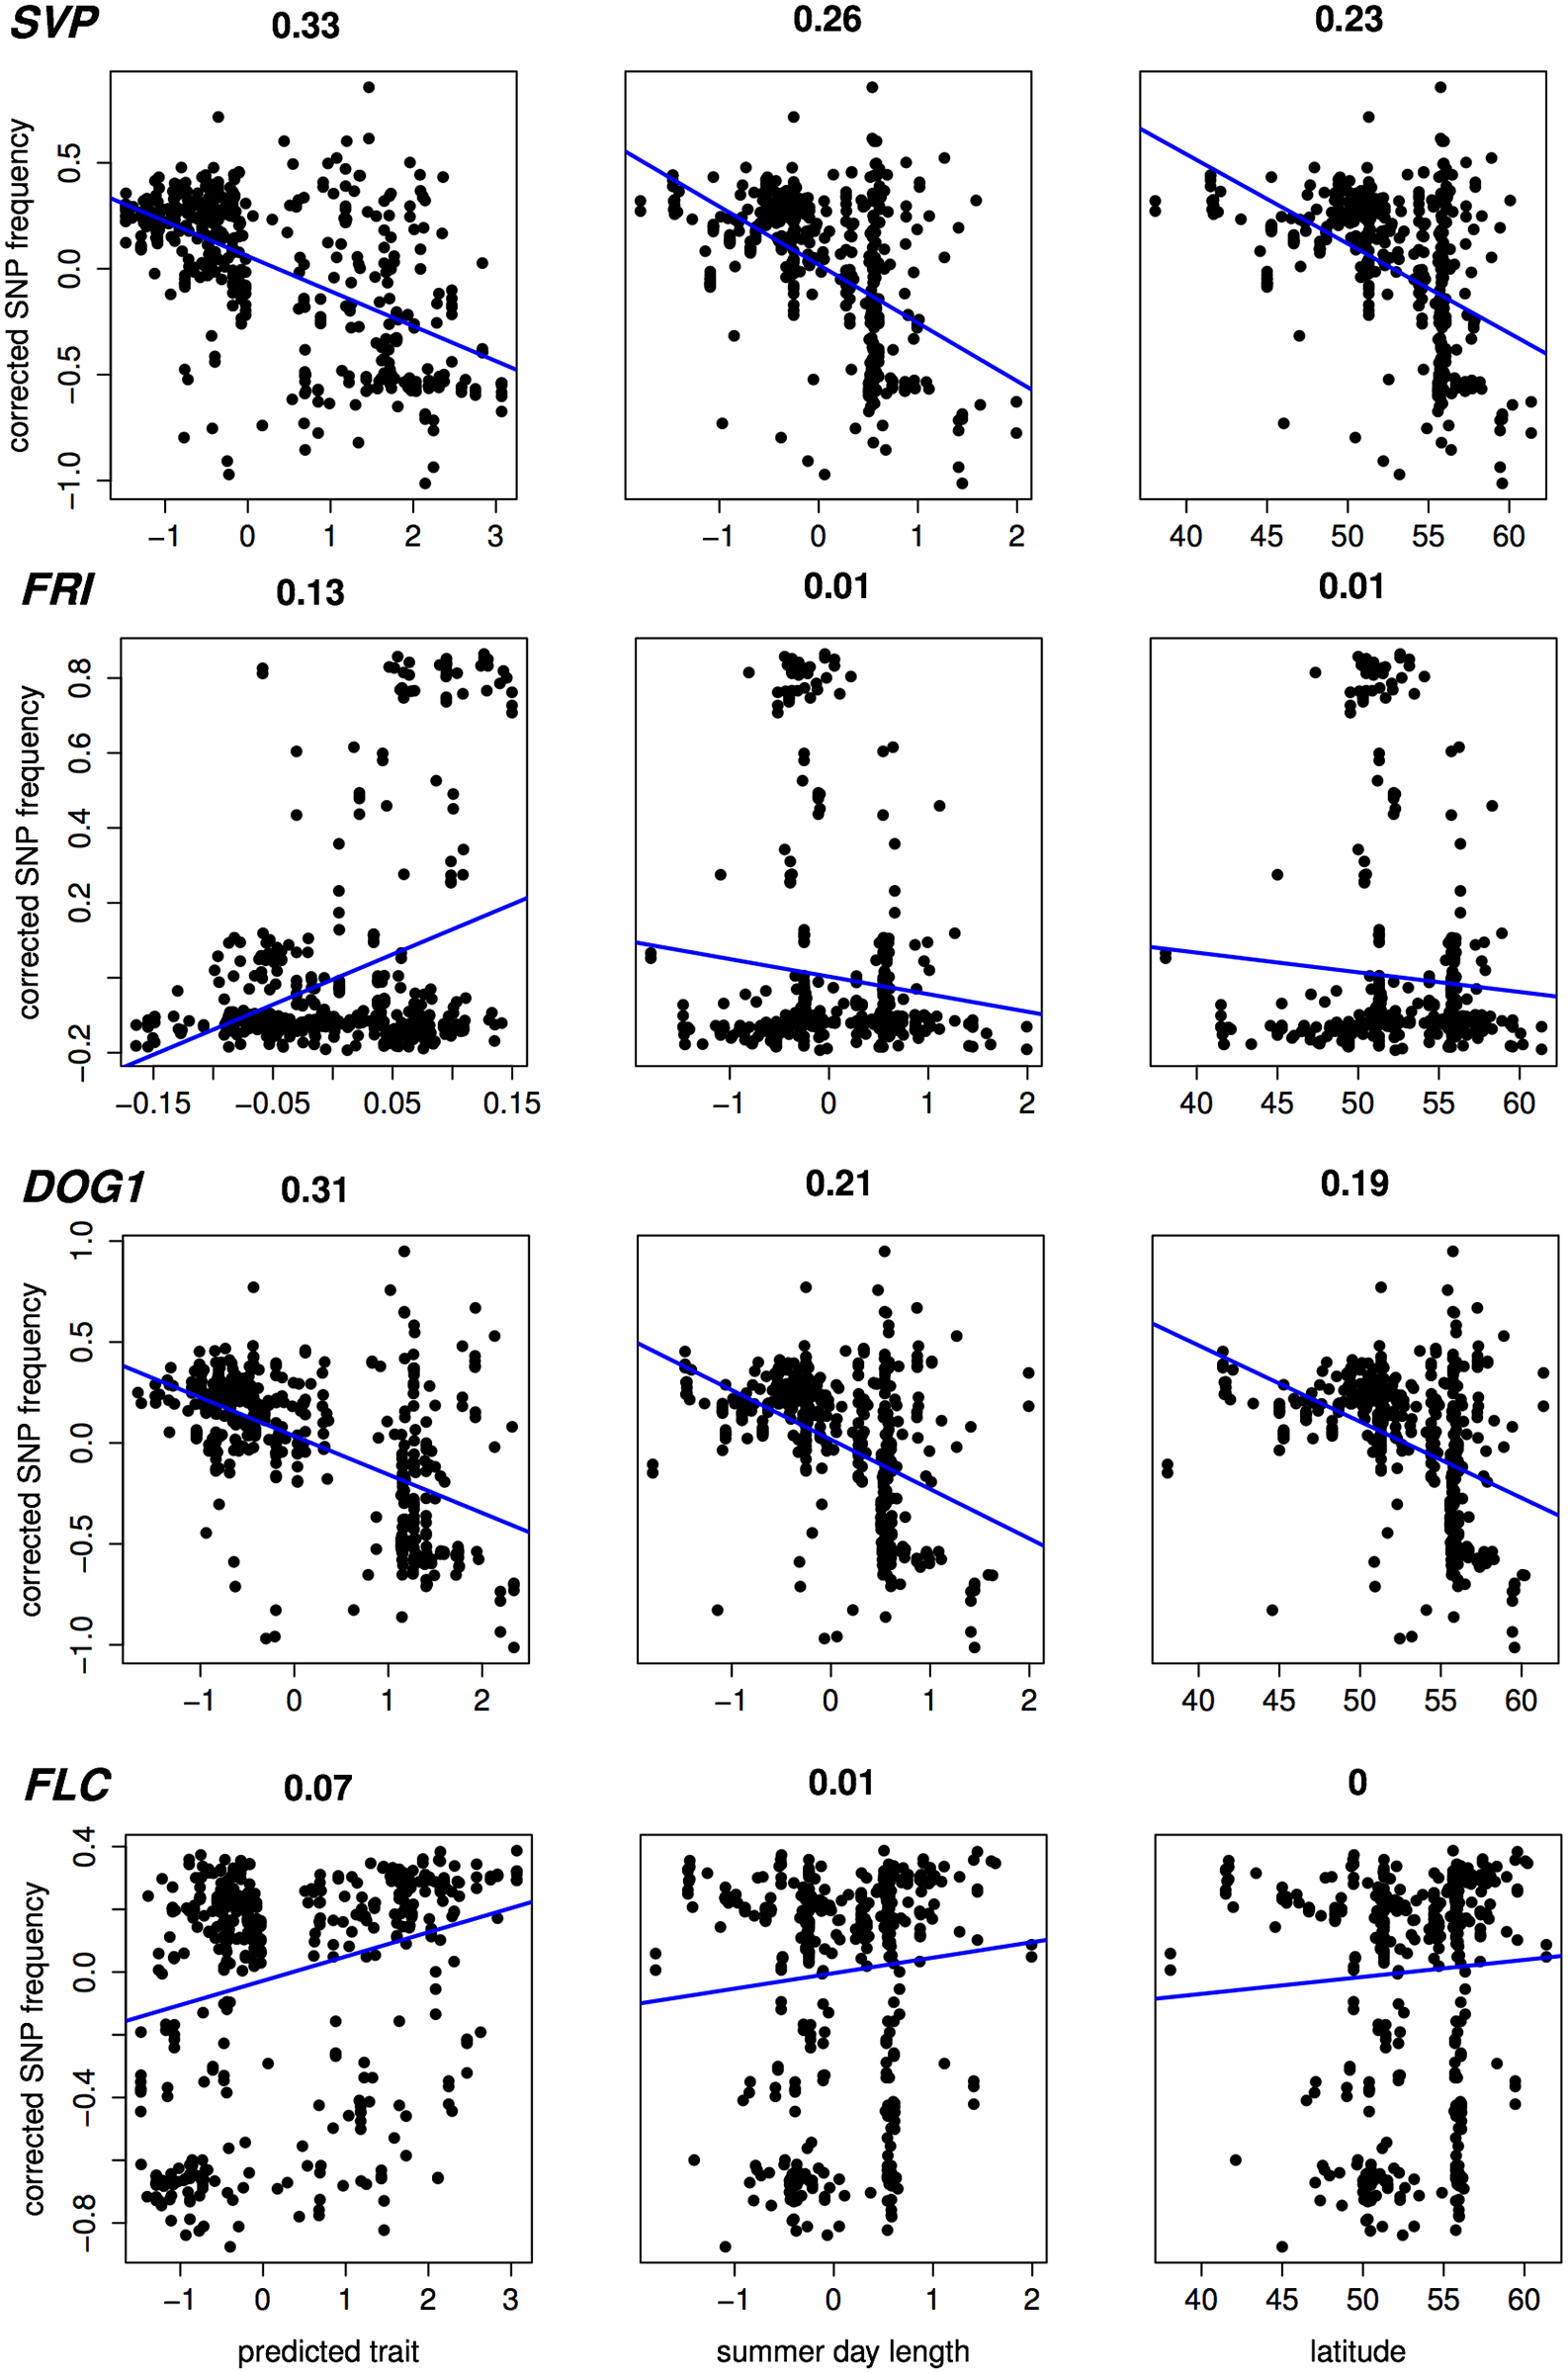 Correlation (Pearson <i>r</i><sup>2</sup>) with estimated SNP frequency at 4 important flowering loci.